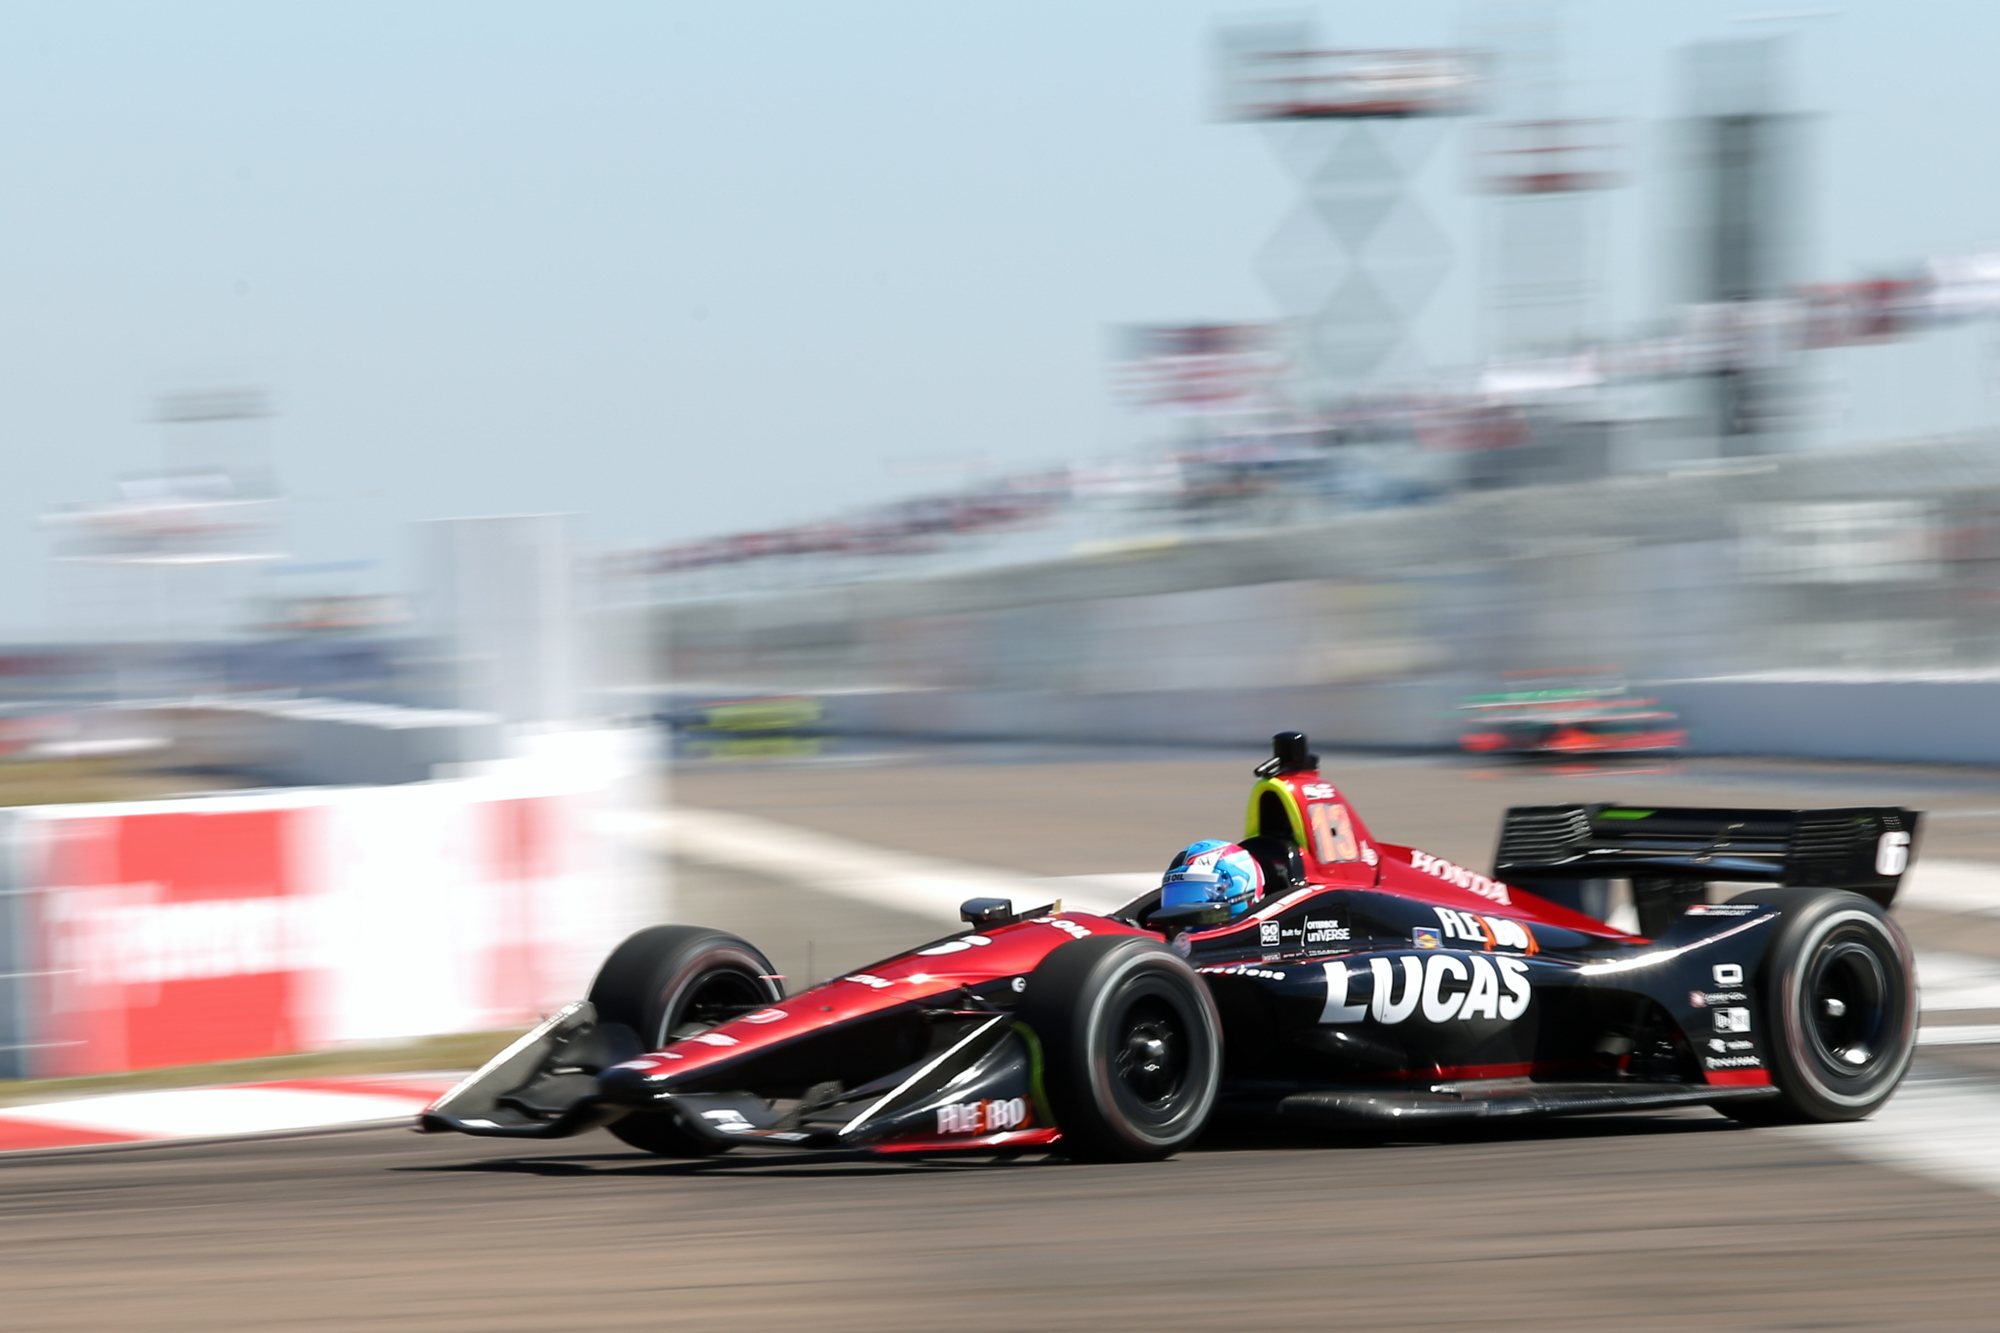 IndyCar rookie #6 Robert Wickens won pole position./ANDREW J. KRAMER